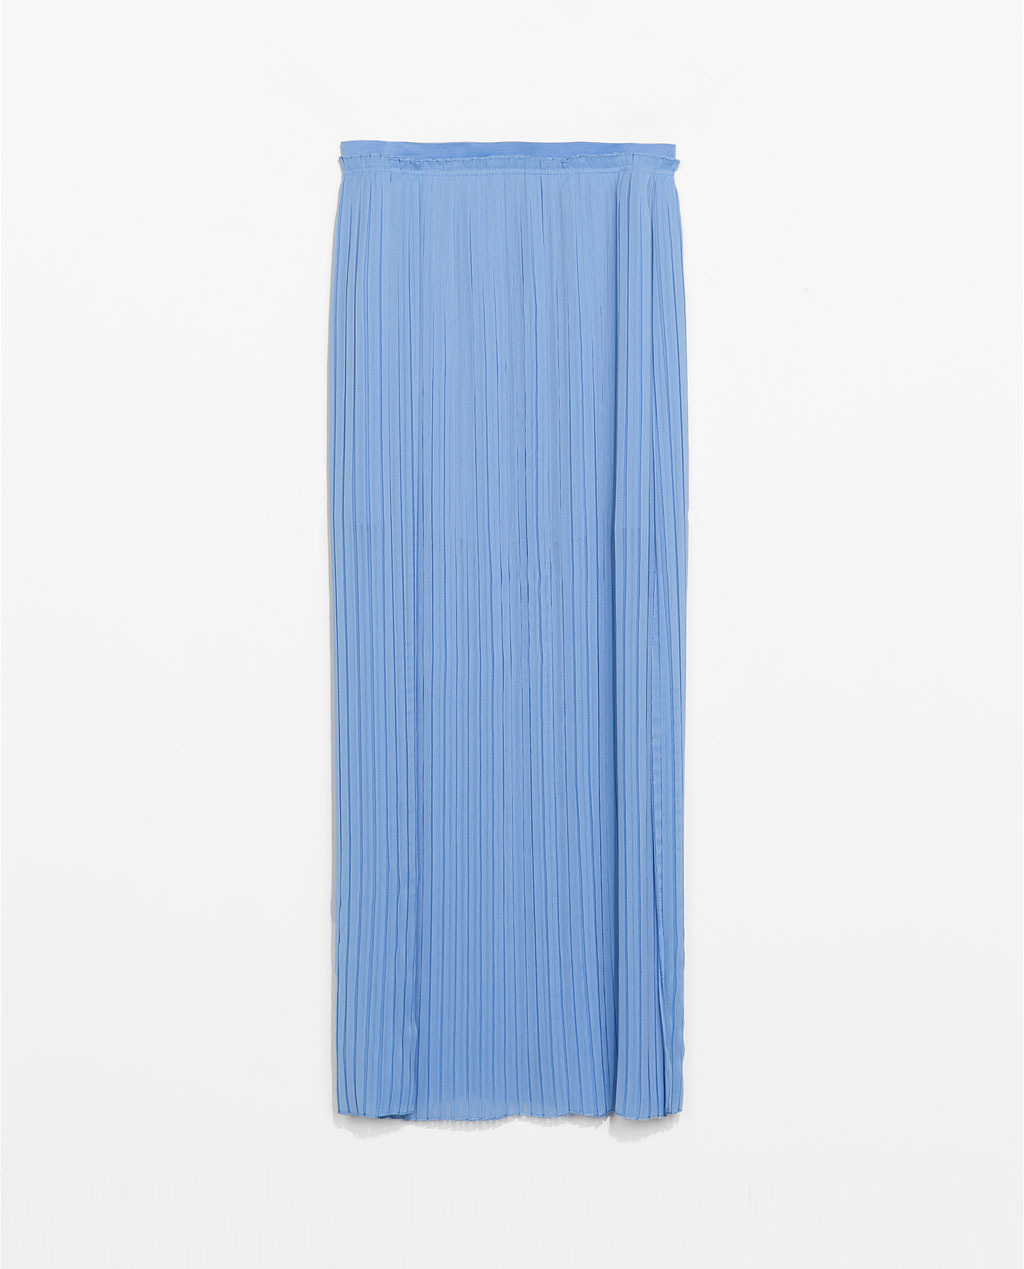 Long Fine Pleat Skirt - pattern: plain; waist: mid/regular rise; predominant colour: pale blue; occasions: casual, occasion, holiday; length: floor length; style: maxi skirt; fibres: polyester/polyamide - 100%; hip detail: adds bulk at the hips; texture group: sheer fabrics/chiffon/organza etc.; fit: straight cut; pattern type: fabric; trends: sorbet shades, powerful pleats; season: s/s 2014